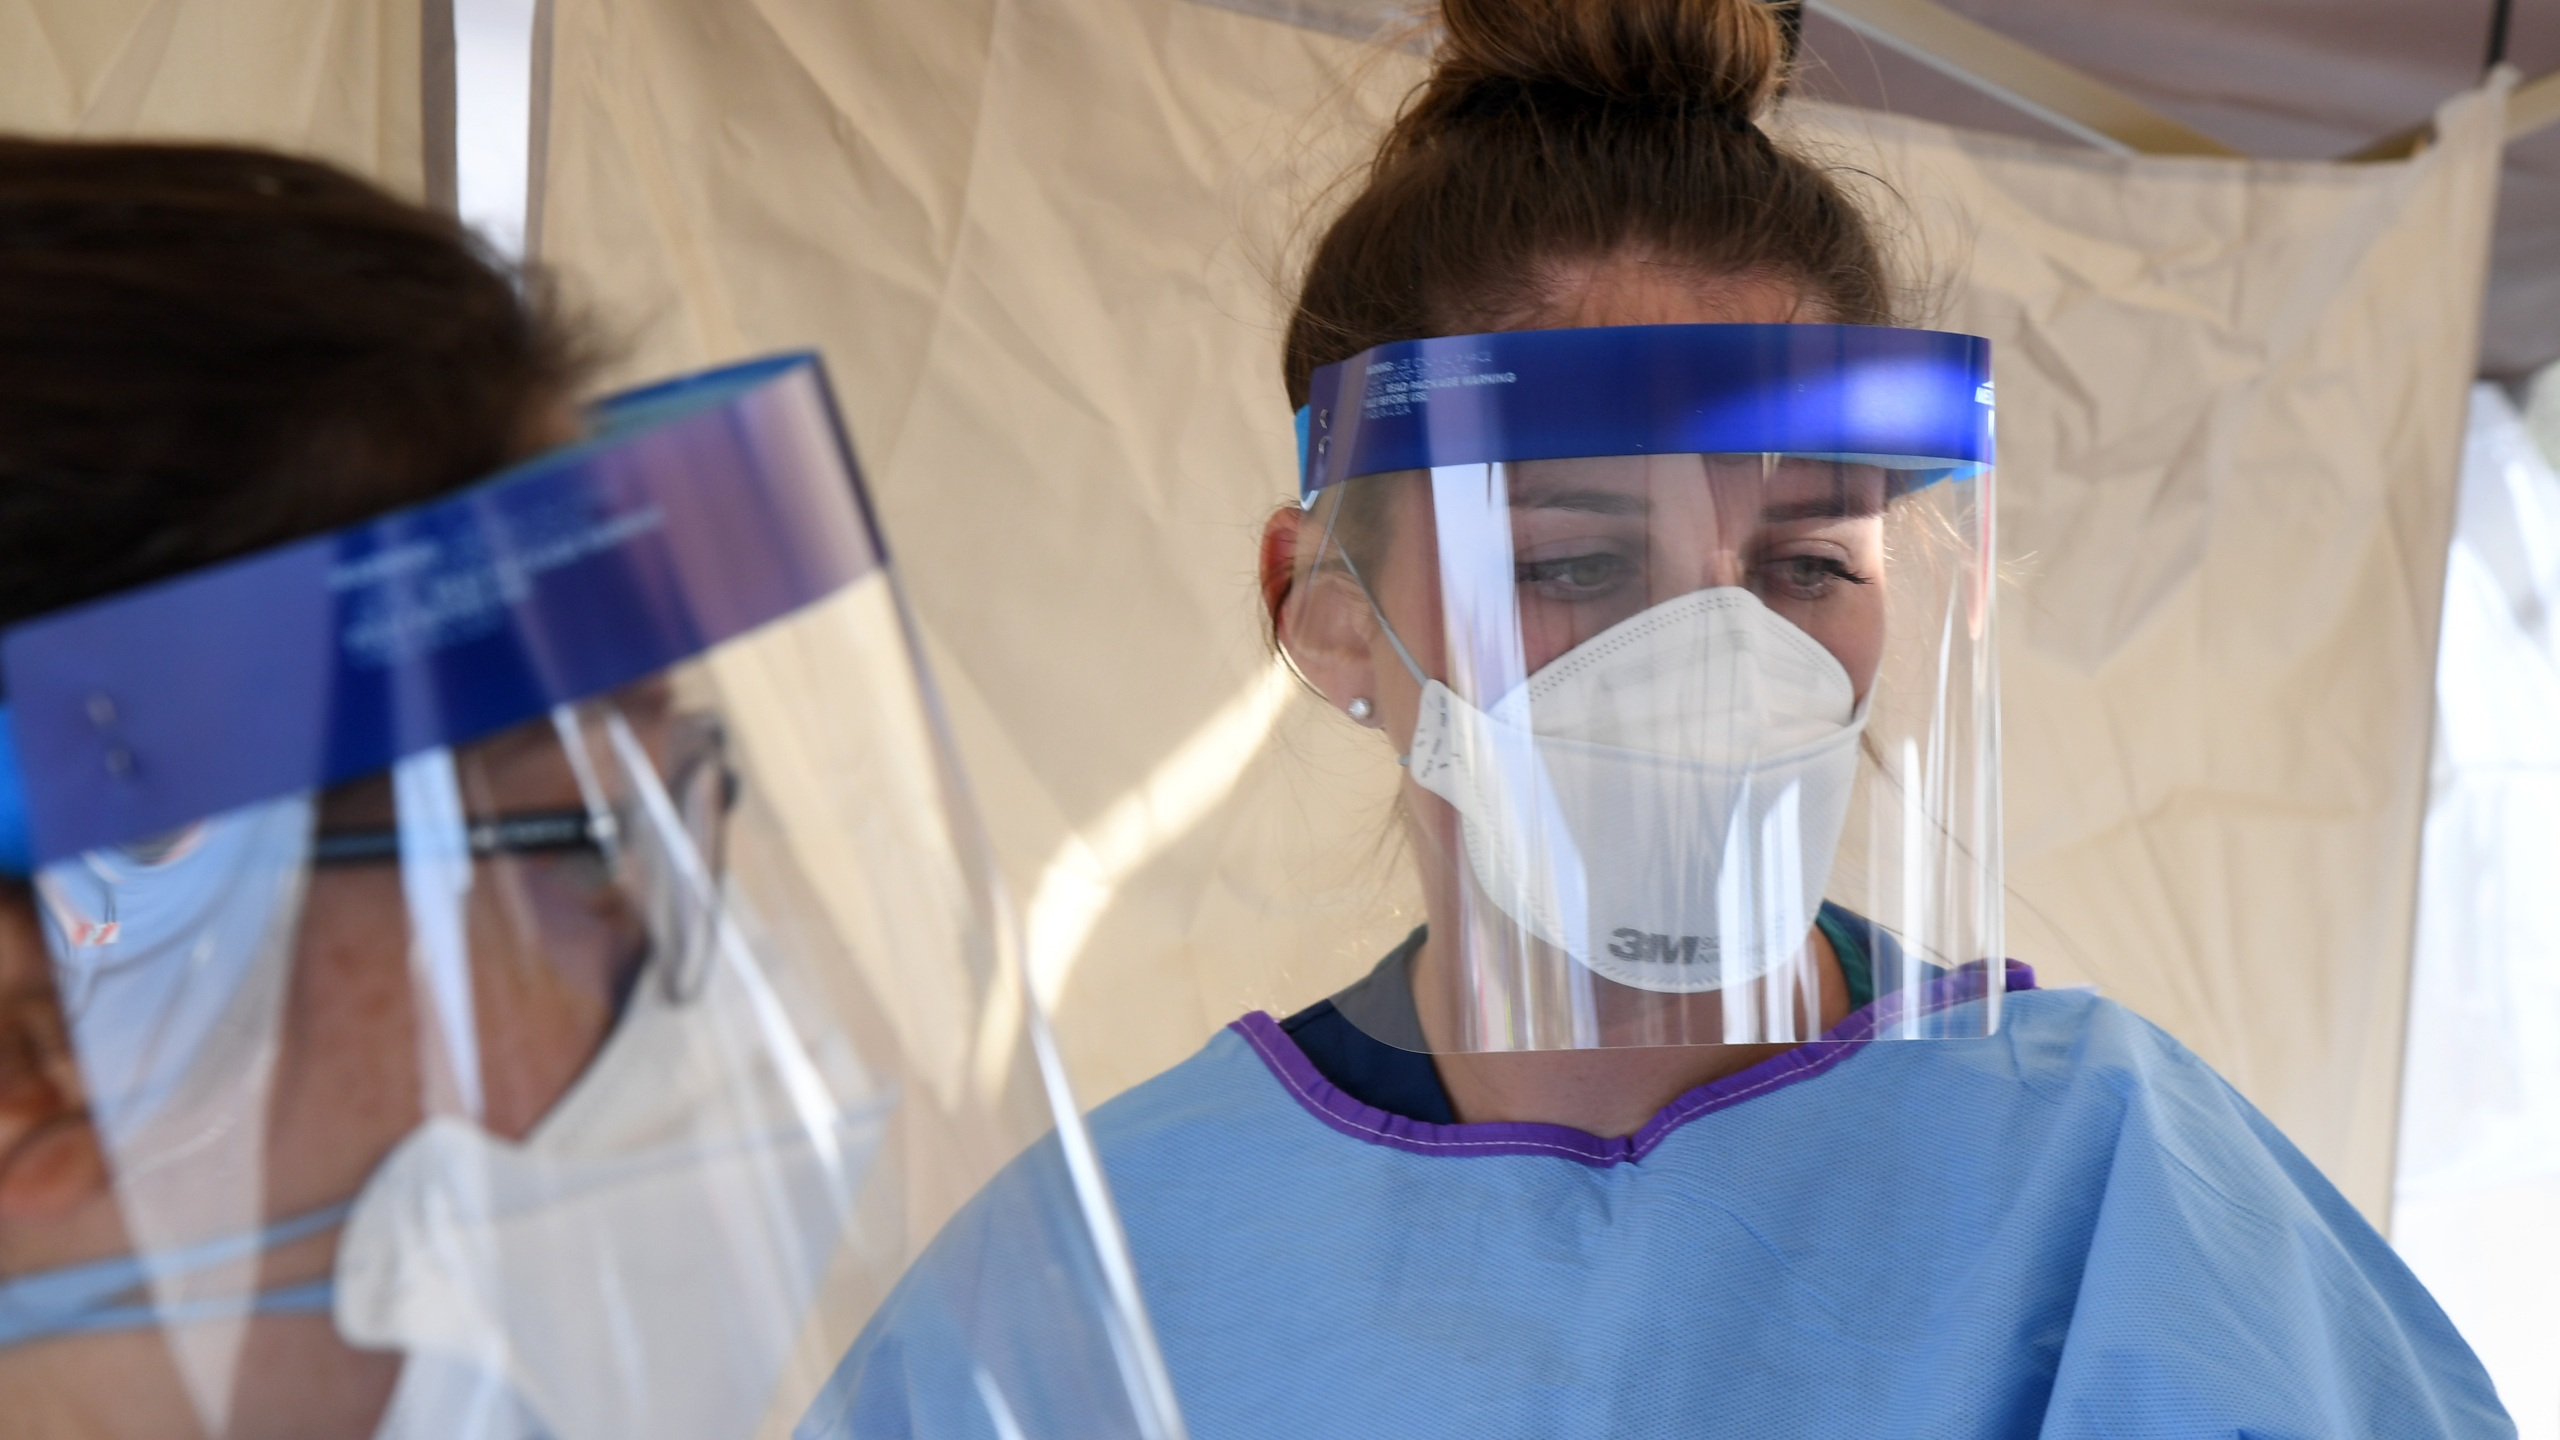 Touro University Nevada medical student Allison Boynton waits to conduct medical screenings at a temporary homeless shelter set up in a parking lot at Cashman Center on March 28, 2020, in Las Vegas, Nevada. (Ethan Miller/Getty Images)